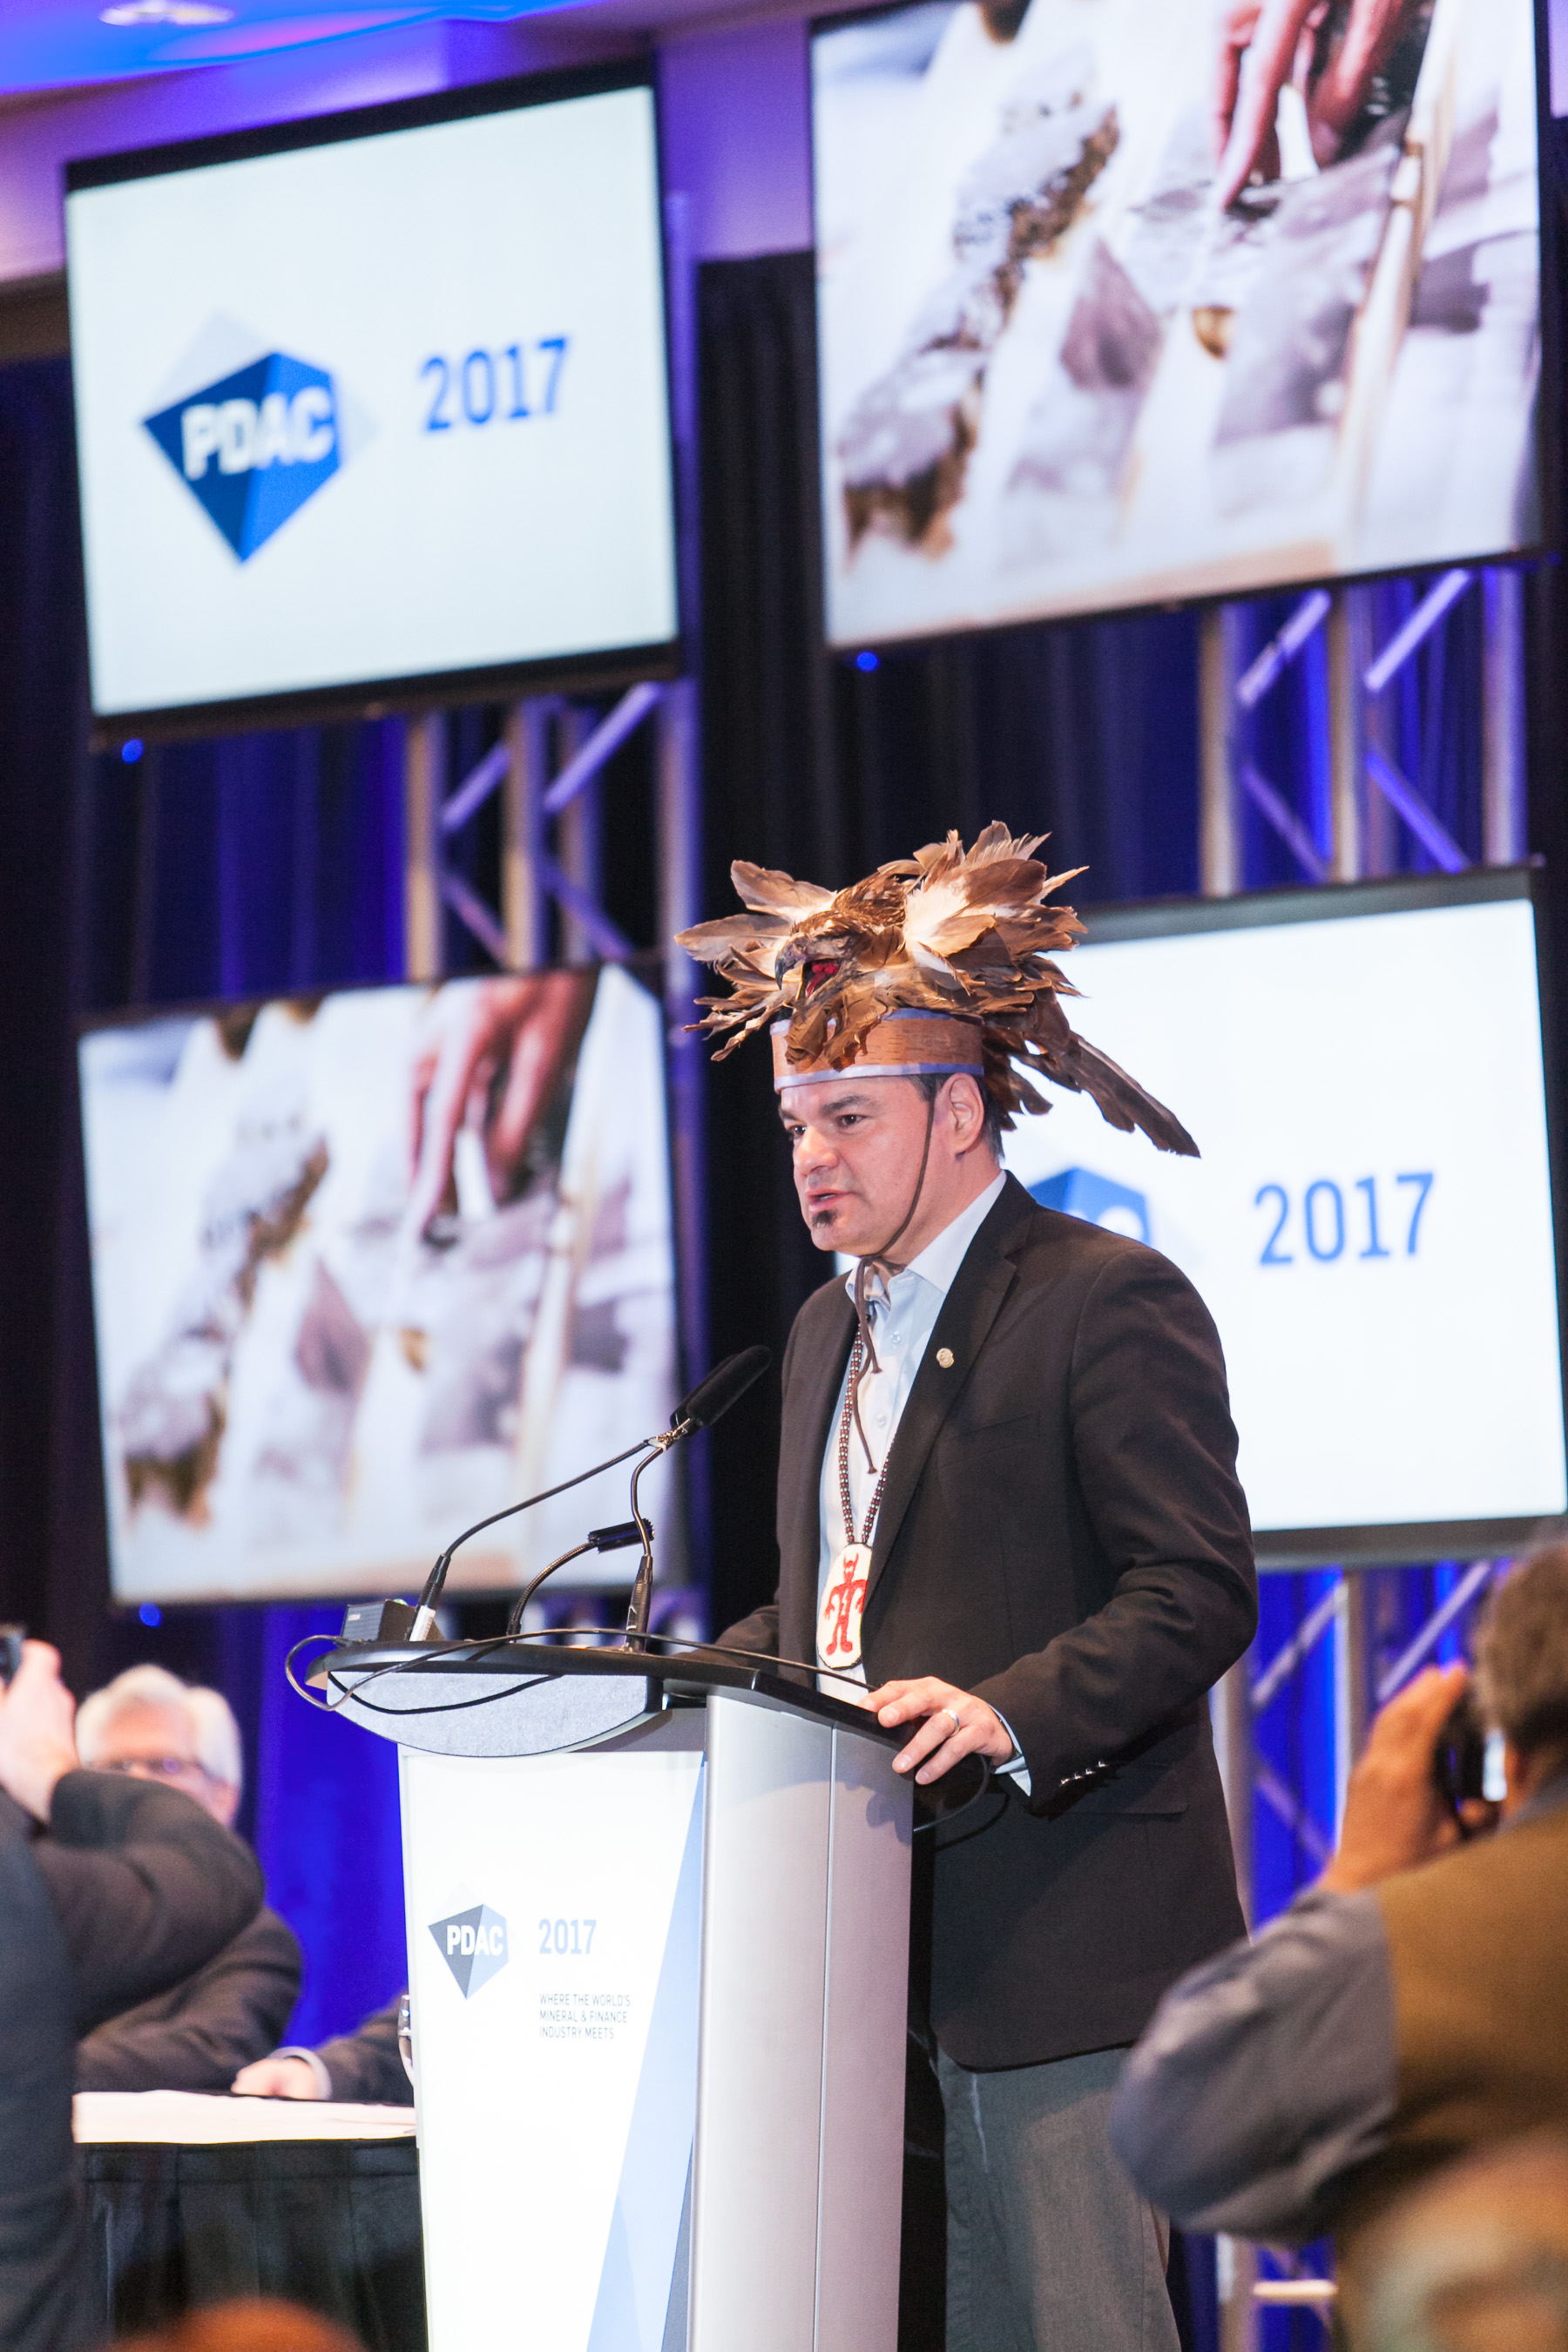 PDAC 2017 Isadore Day, Regional Chief, Chiefs of Ontario